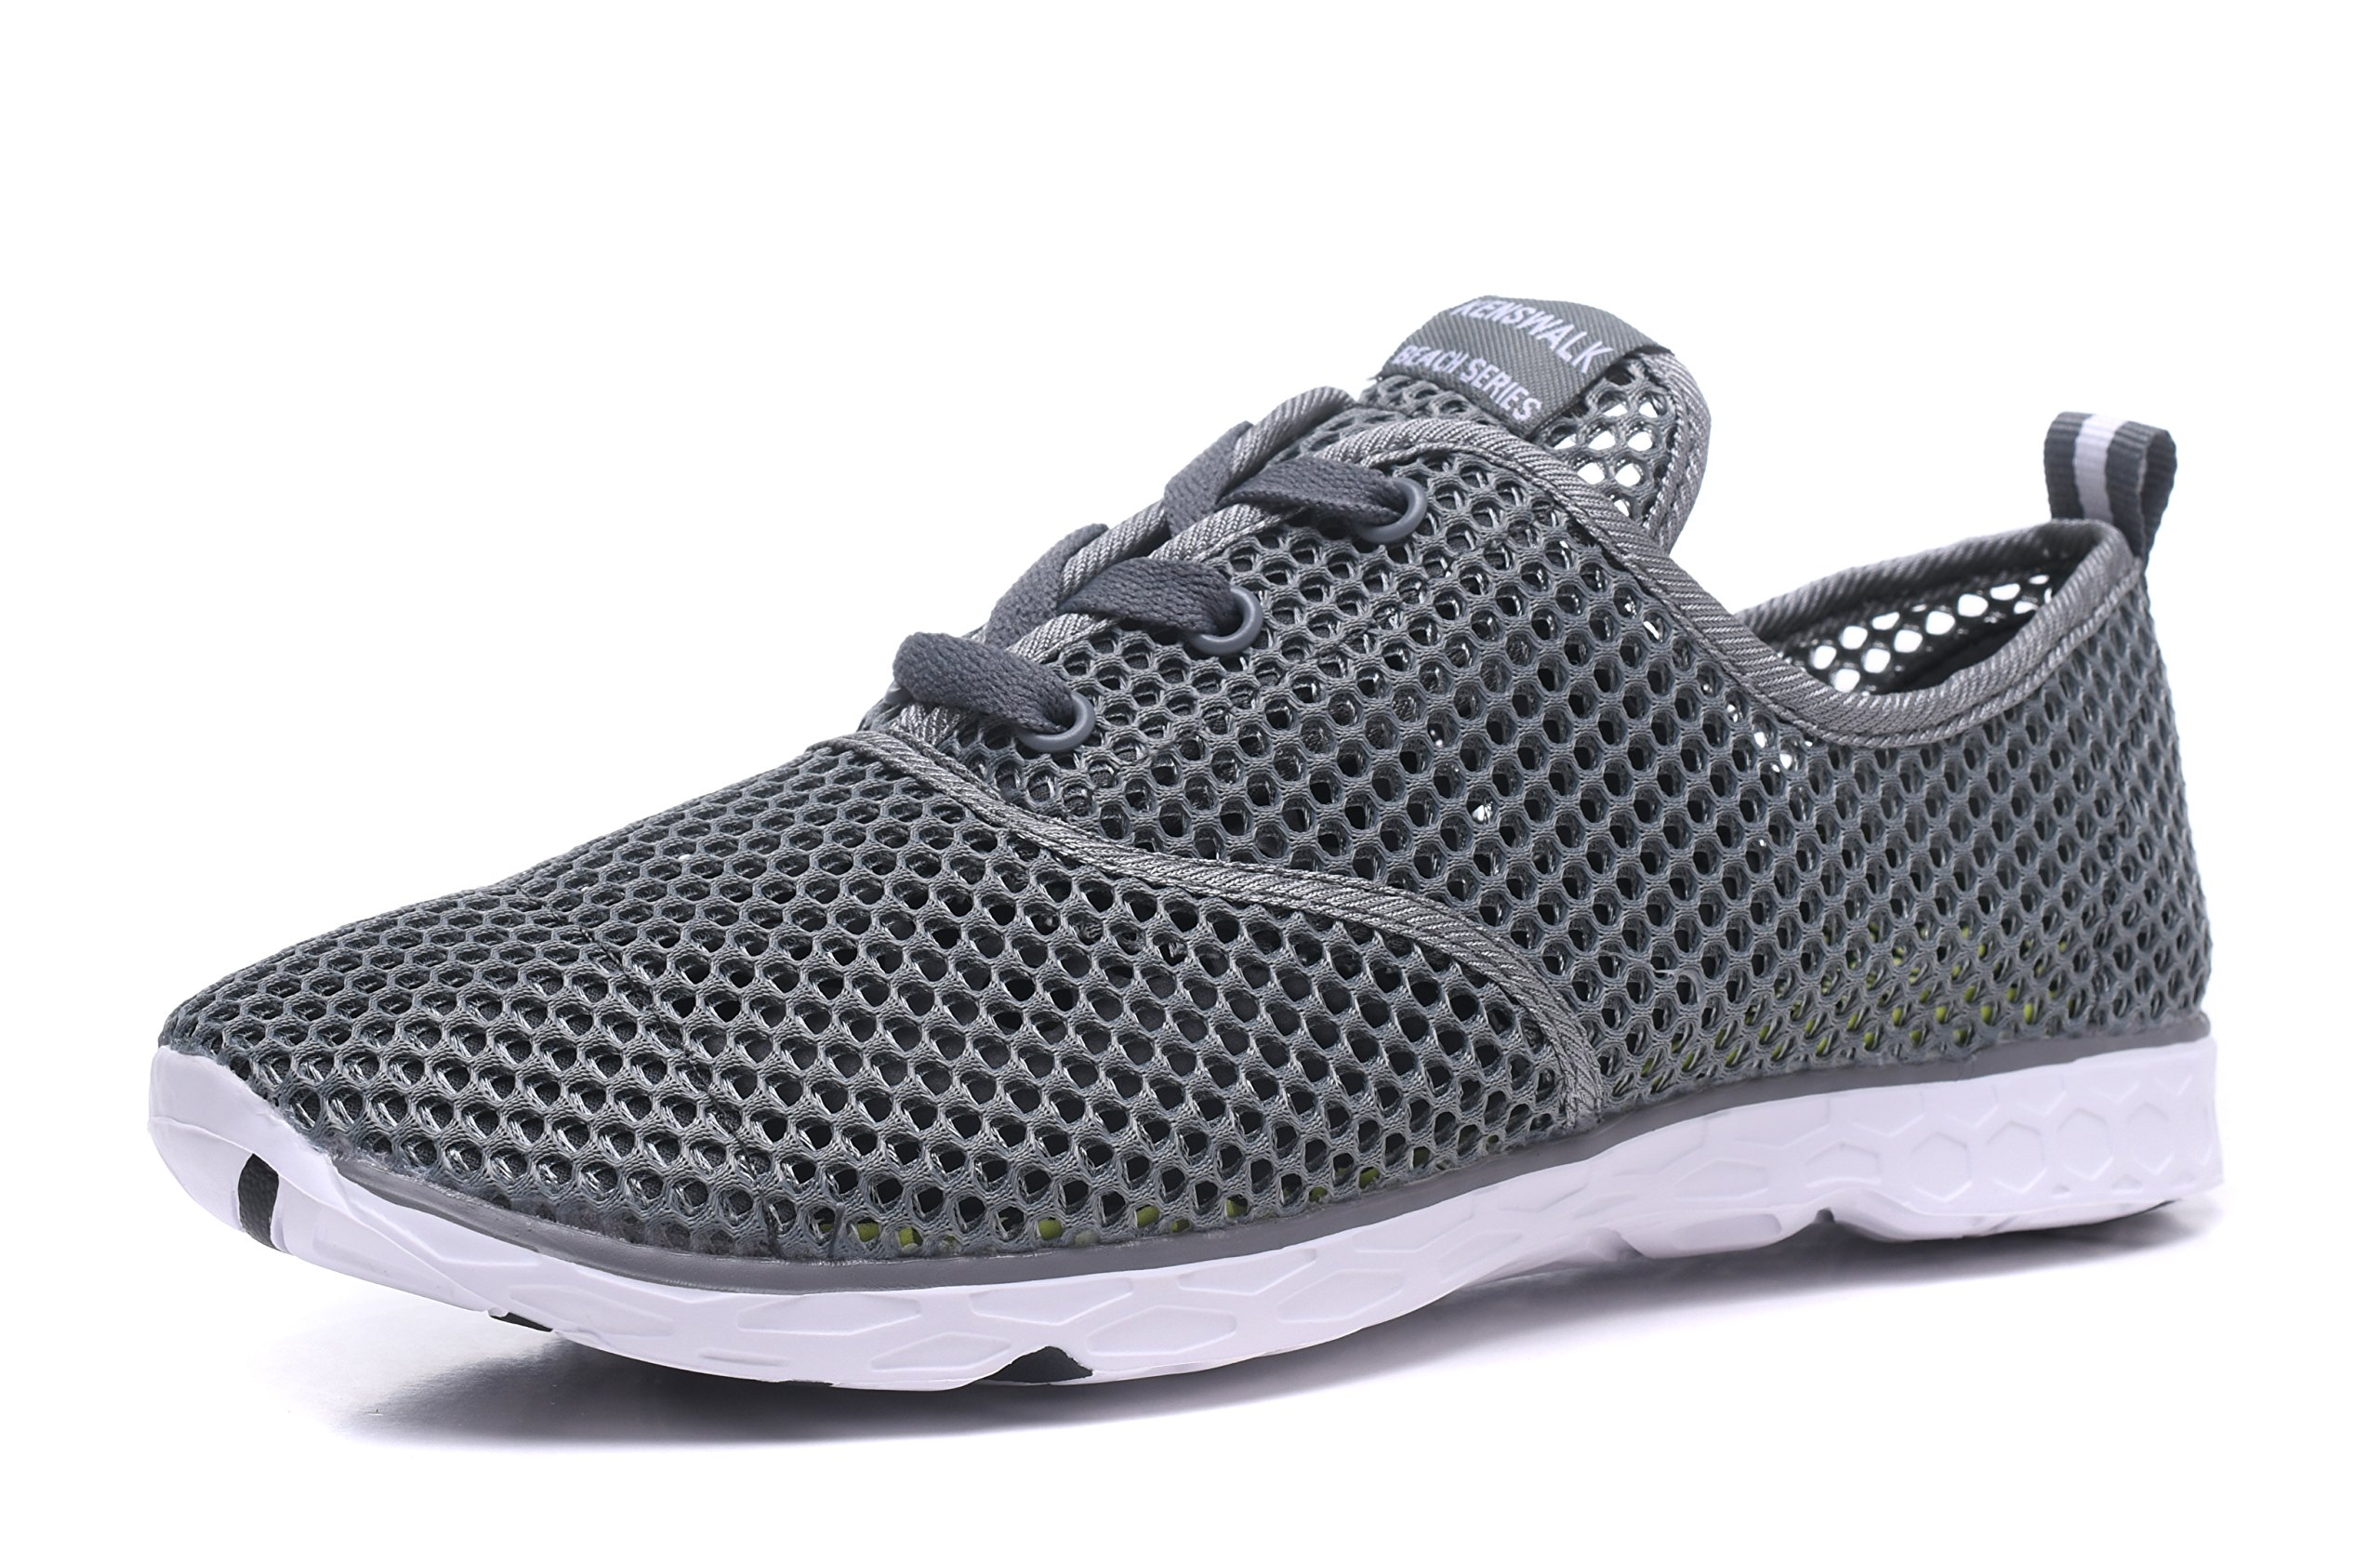 Kenswalk Men's Aqua Water Shoes Lightweight Quick Drying Beach Shoes(US 11,Deep Grey Men 2017)